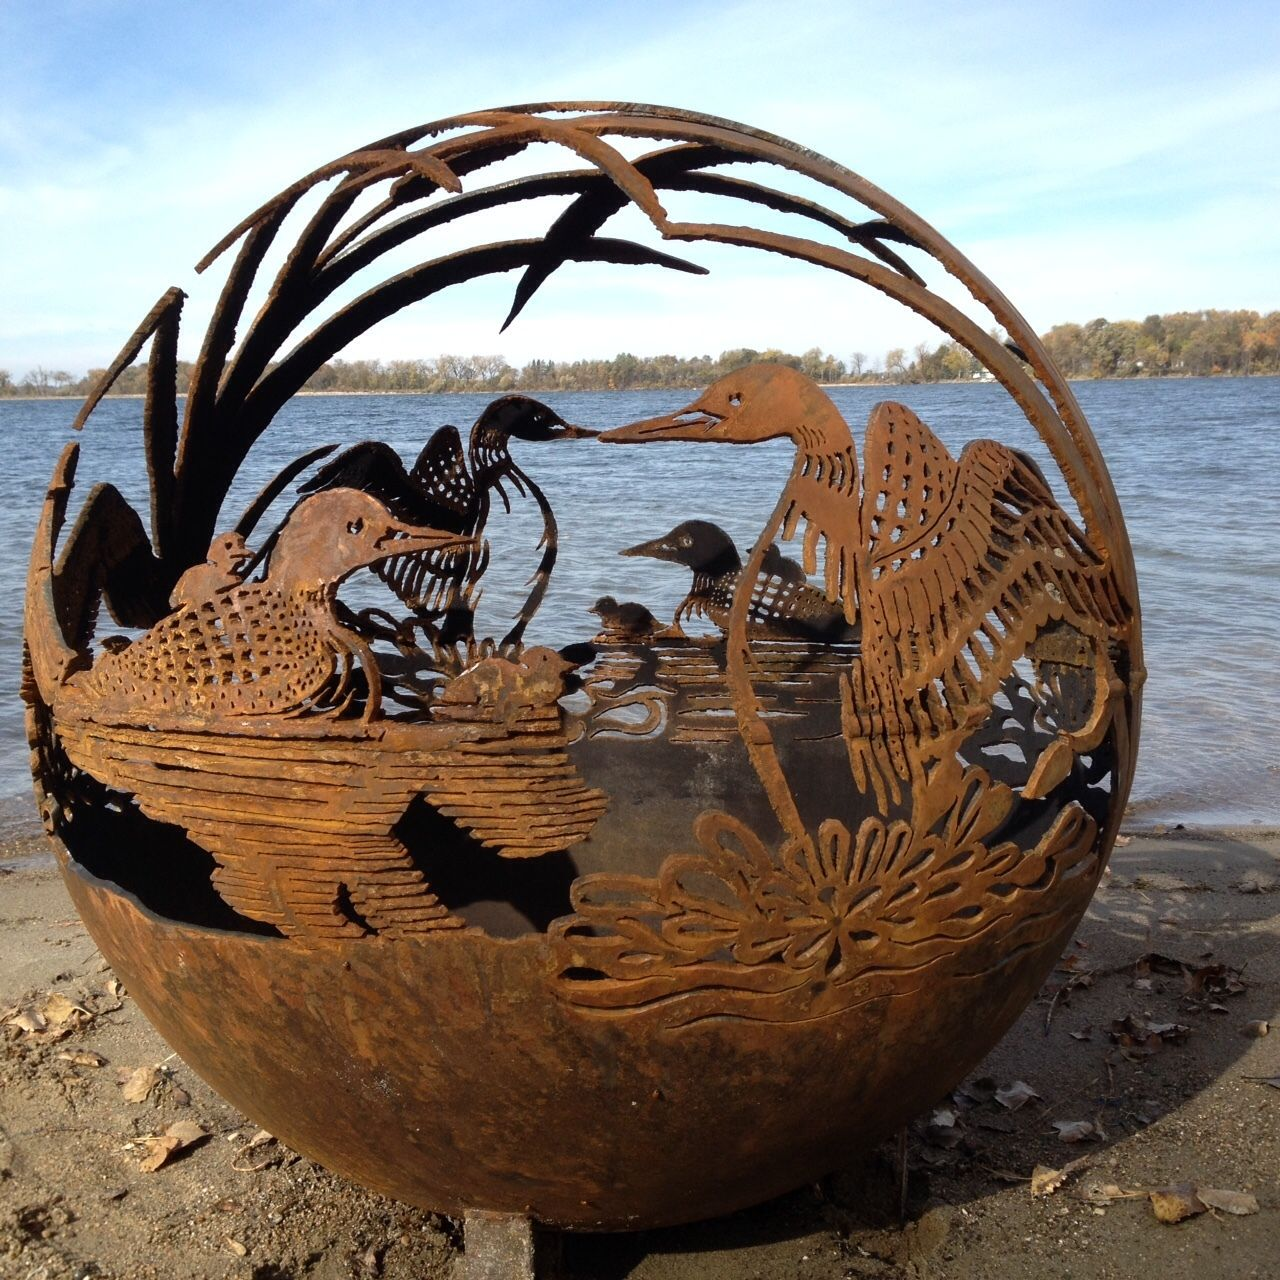 Fireball Fire Pits LOON   Unique Handcrafted Wood Burning Steel Fire Pits.  Creative Handmade Artistic Idea